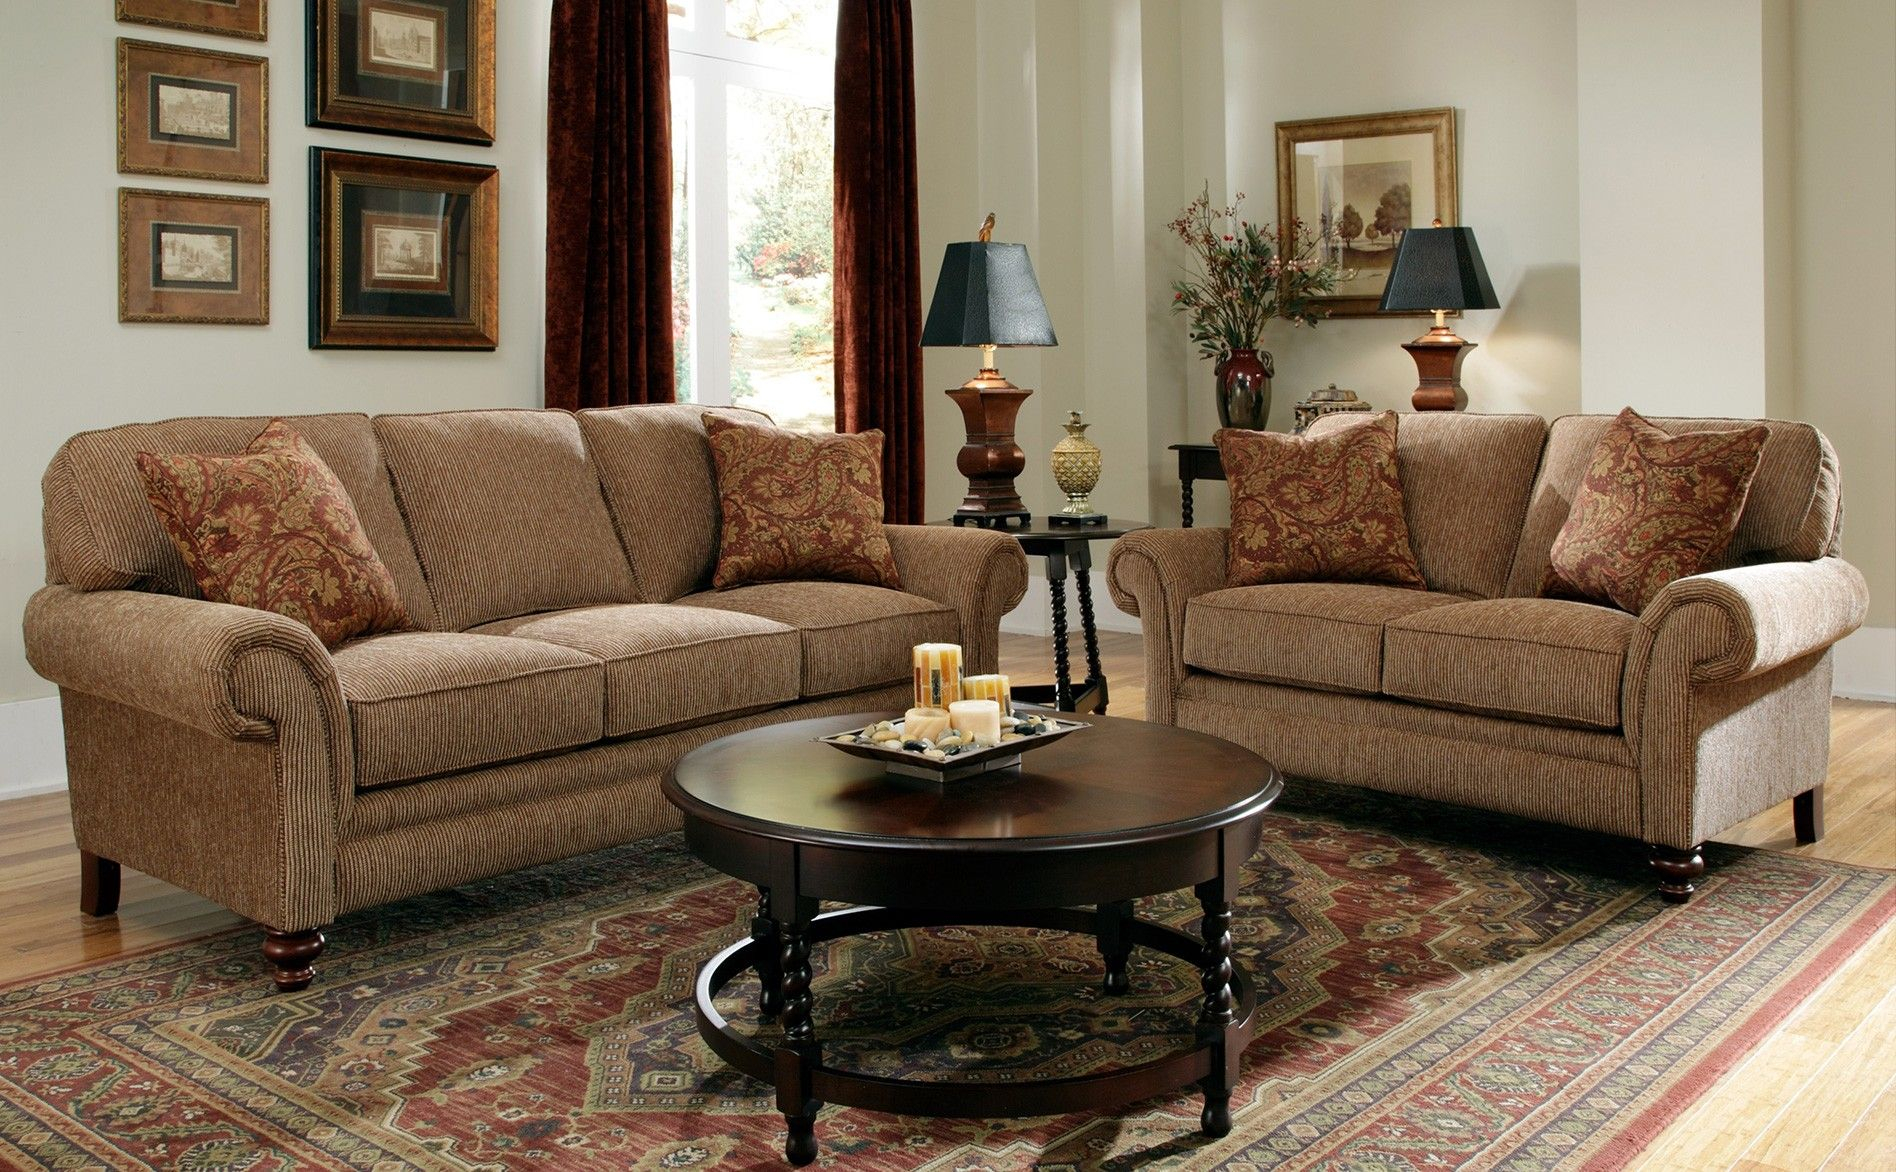 Broyhill Sofa Sofa Set Broyhill Furniture Sofa Loveseat Set with Broyhill Living Room Set